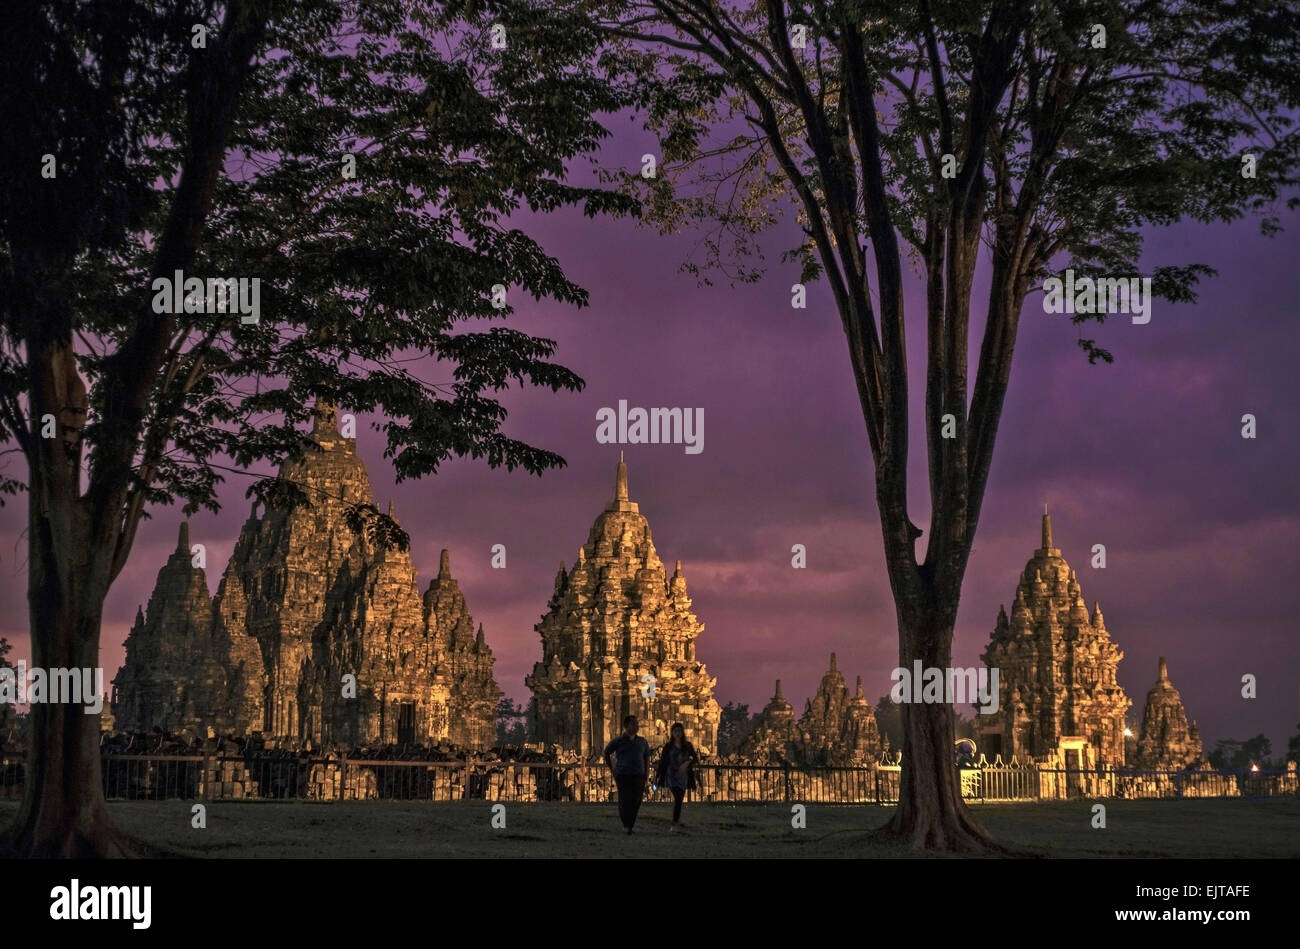 A romantic purple evening at Candi Sewu (Temple of Thousands) in Central Java. A romantic unique blue hour moment - Stock Image